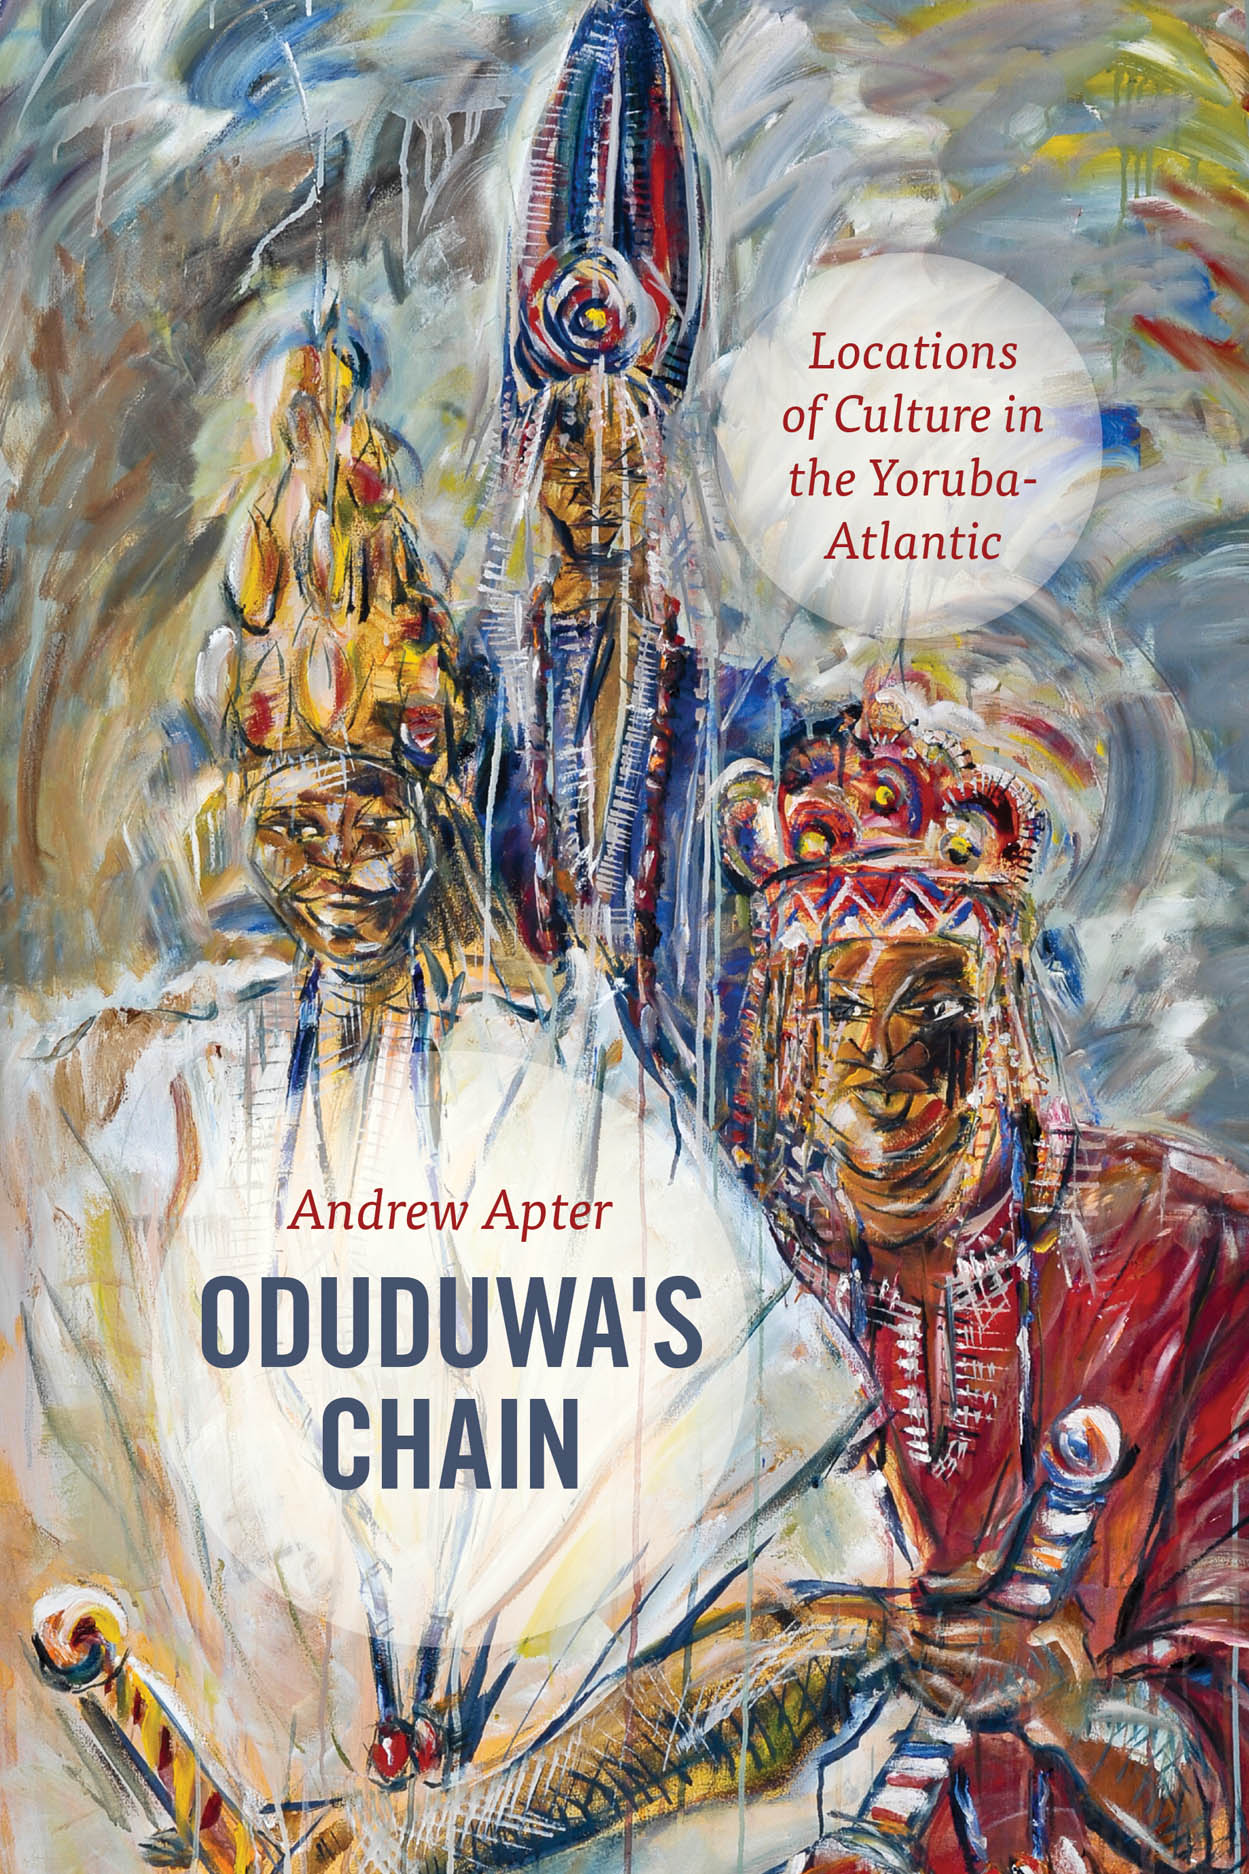 Oduduwa's Chain: Locations of Culture in the Yoruba-Atlantic